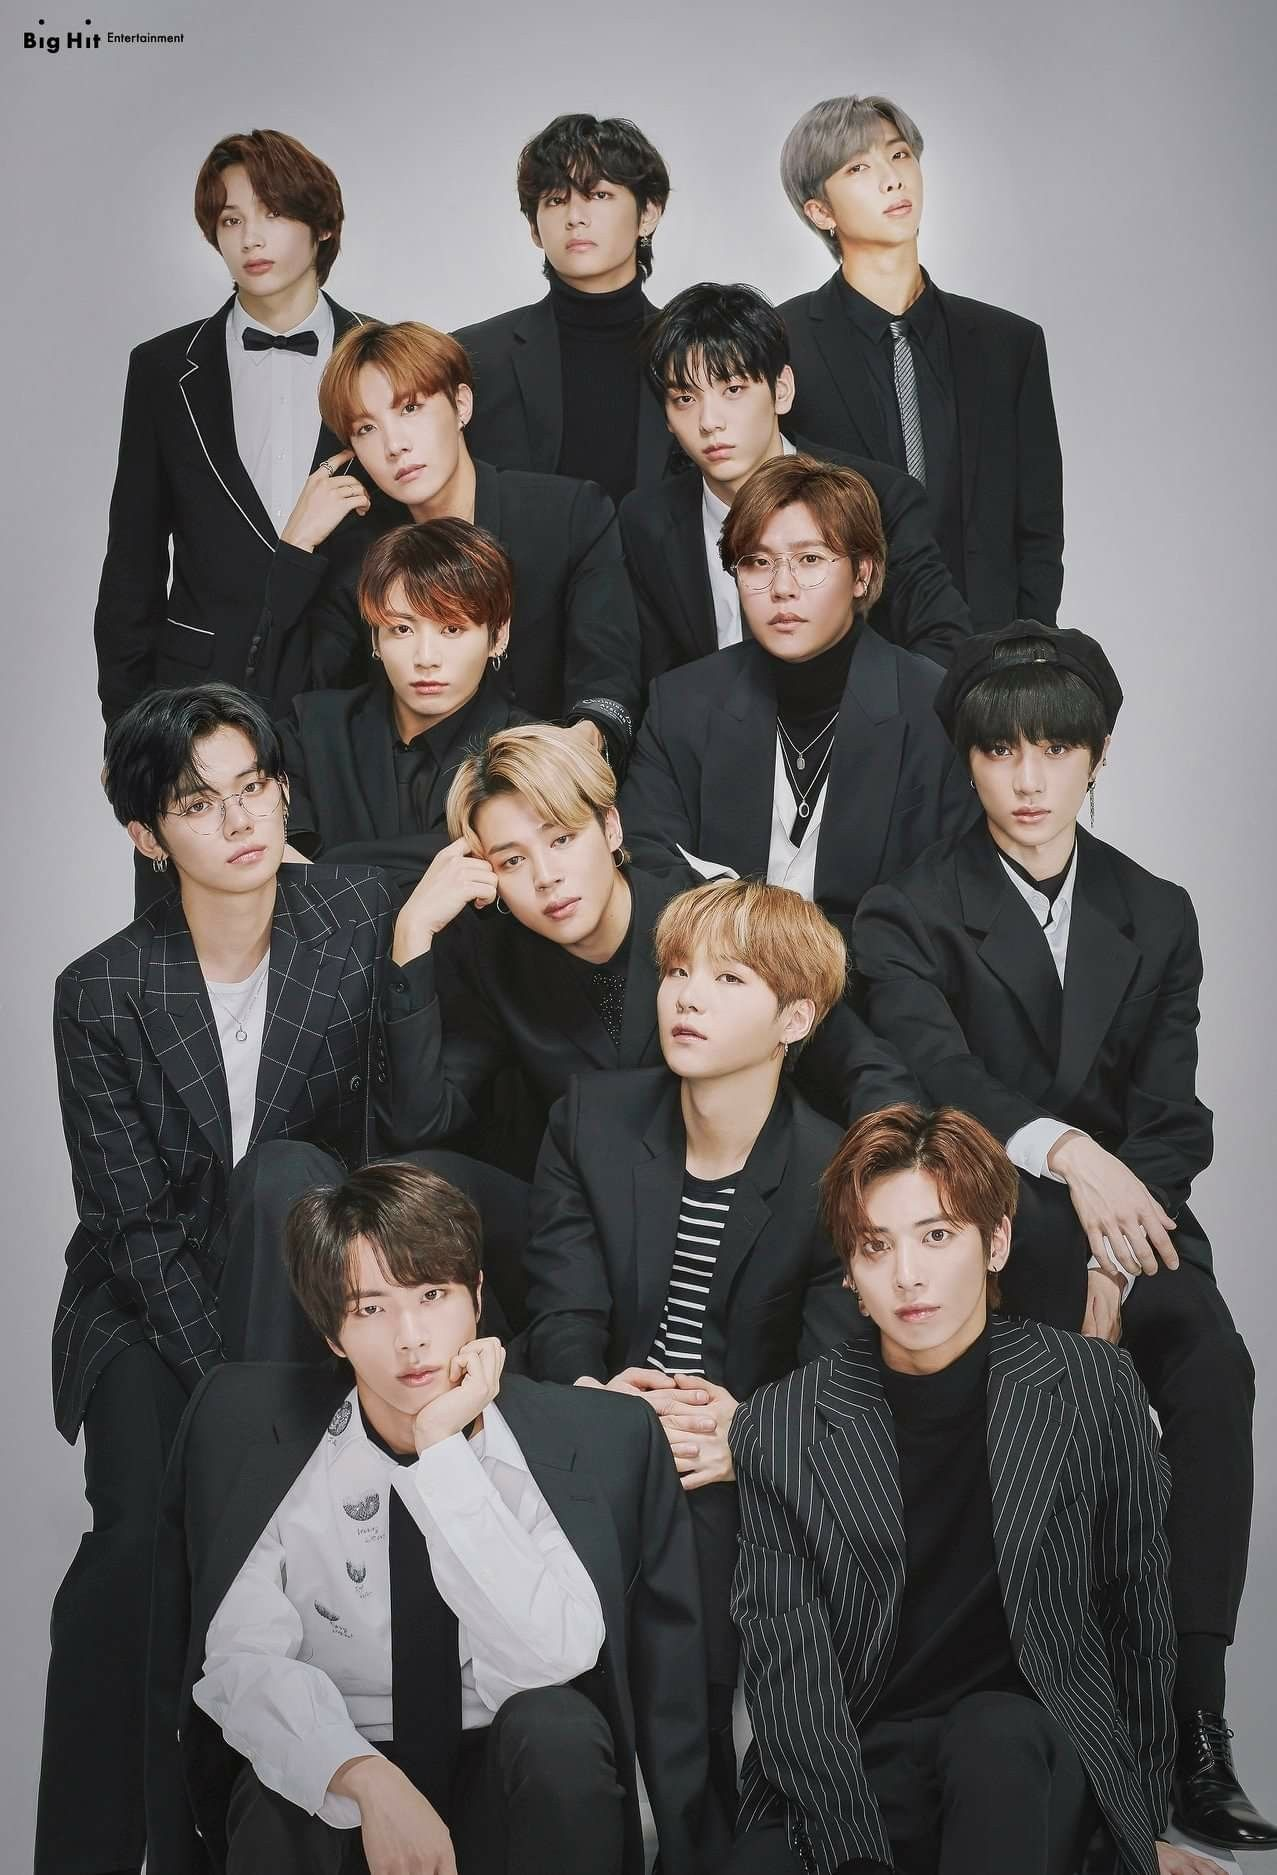 Big Hit Entertainment 15th Anniversary Artist Group Photo In 2020